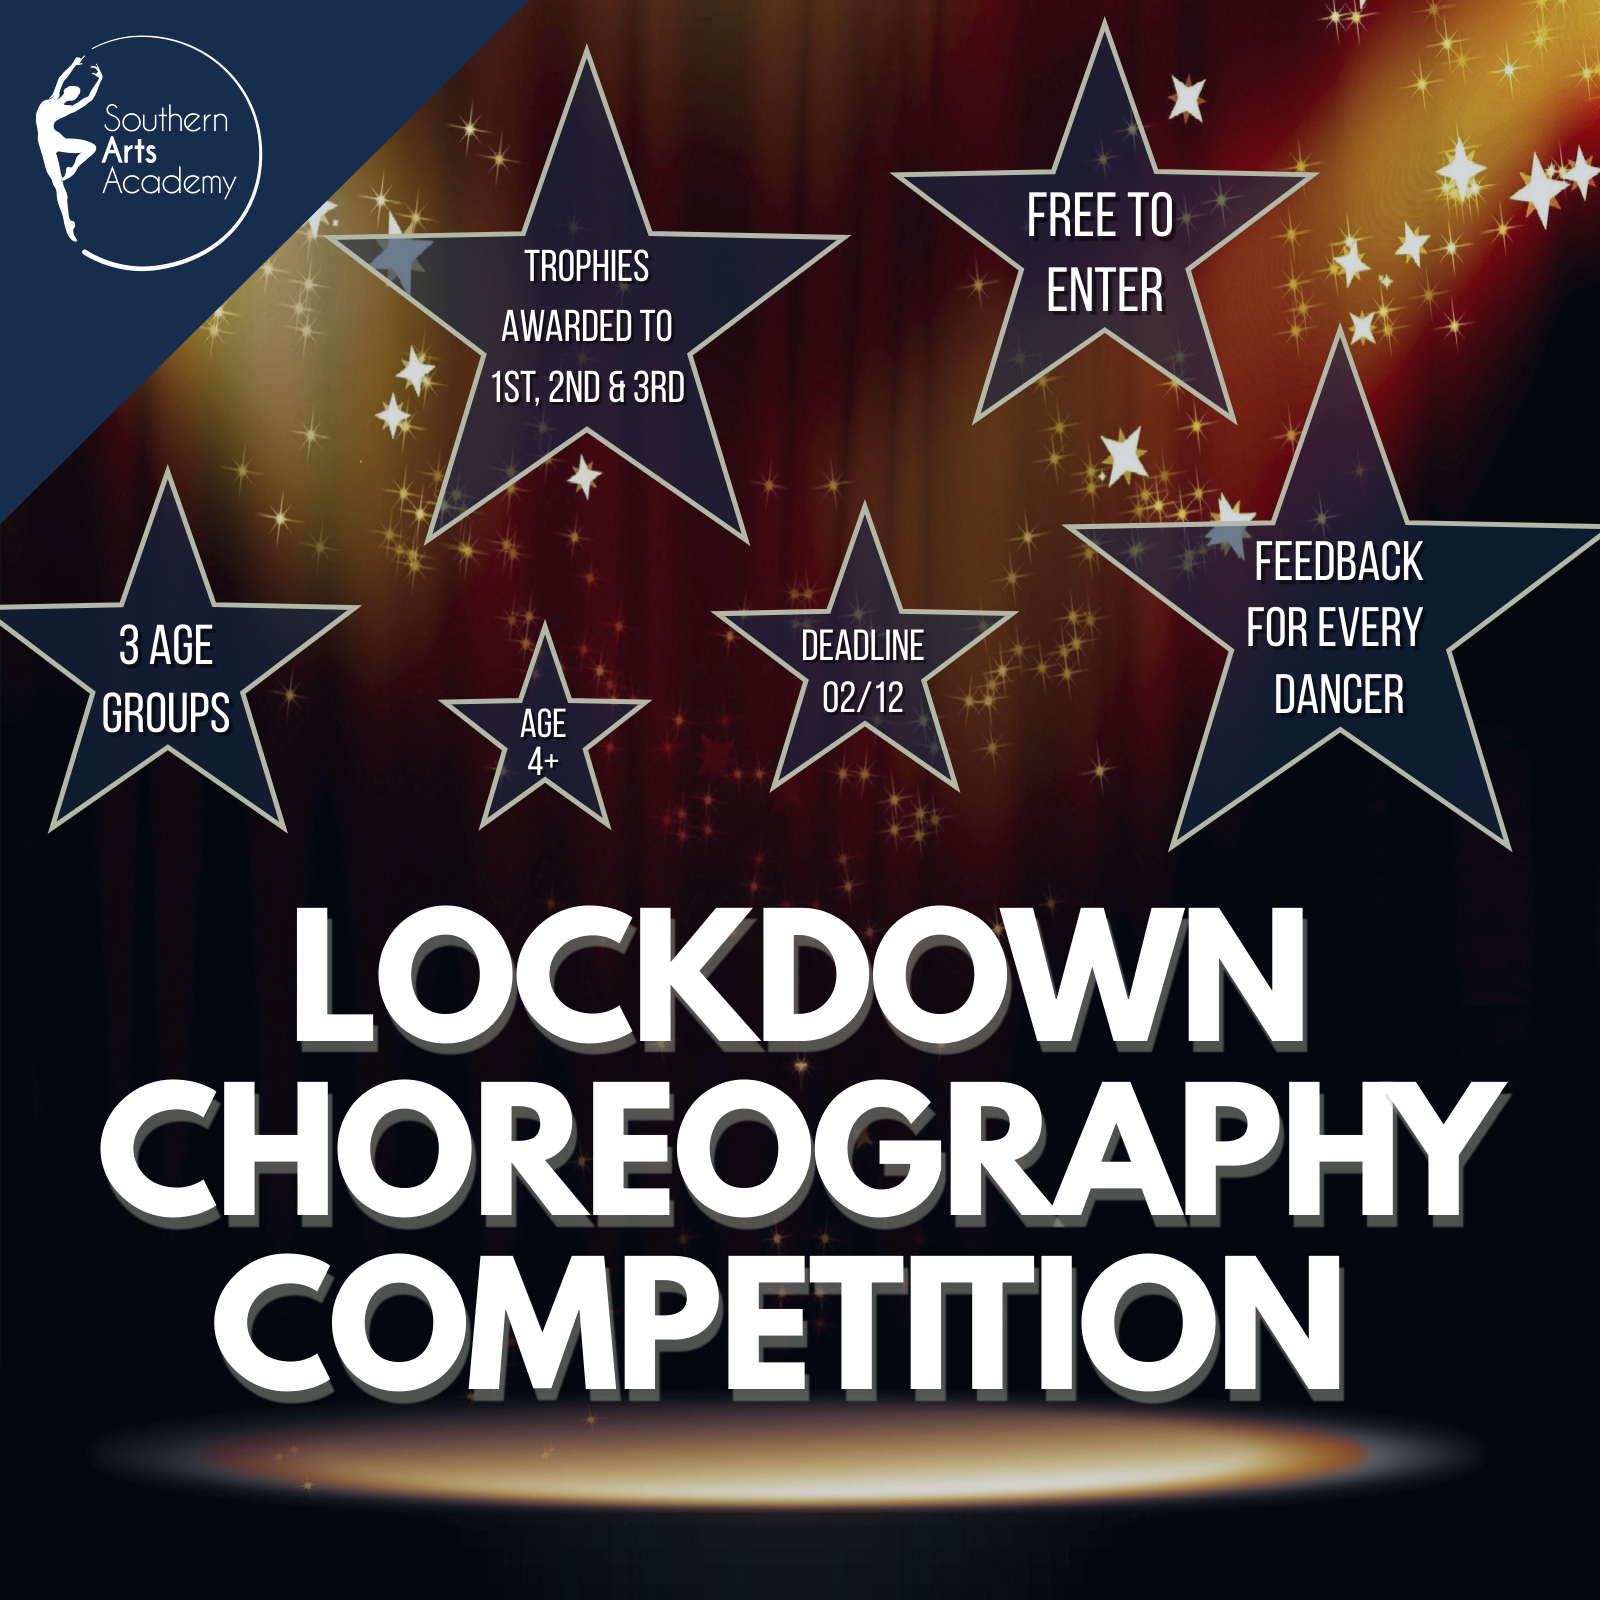 Lockdown Choreography Competition